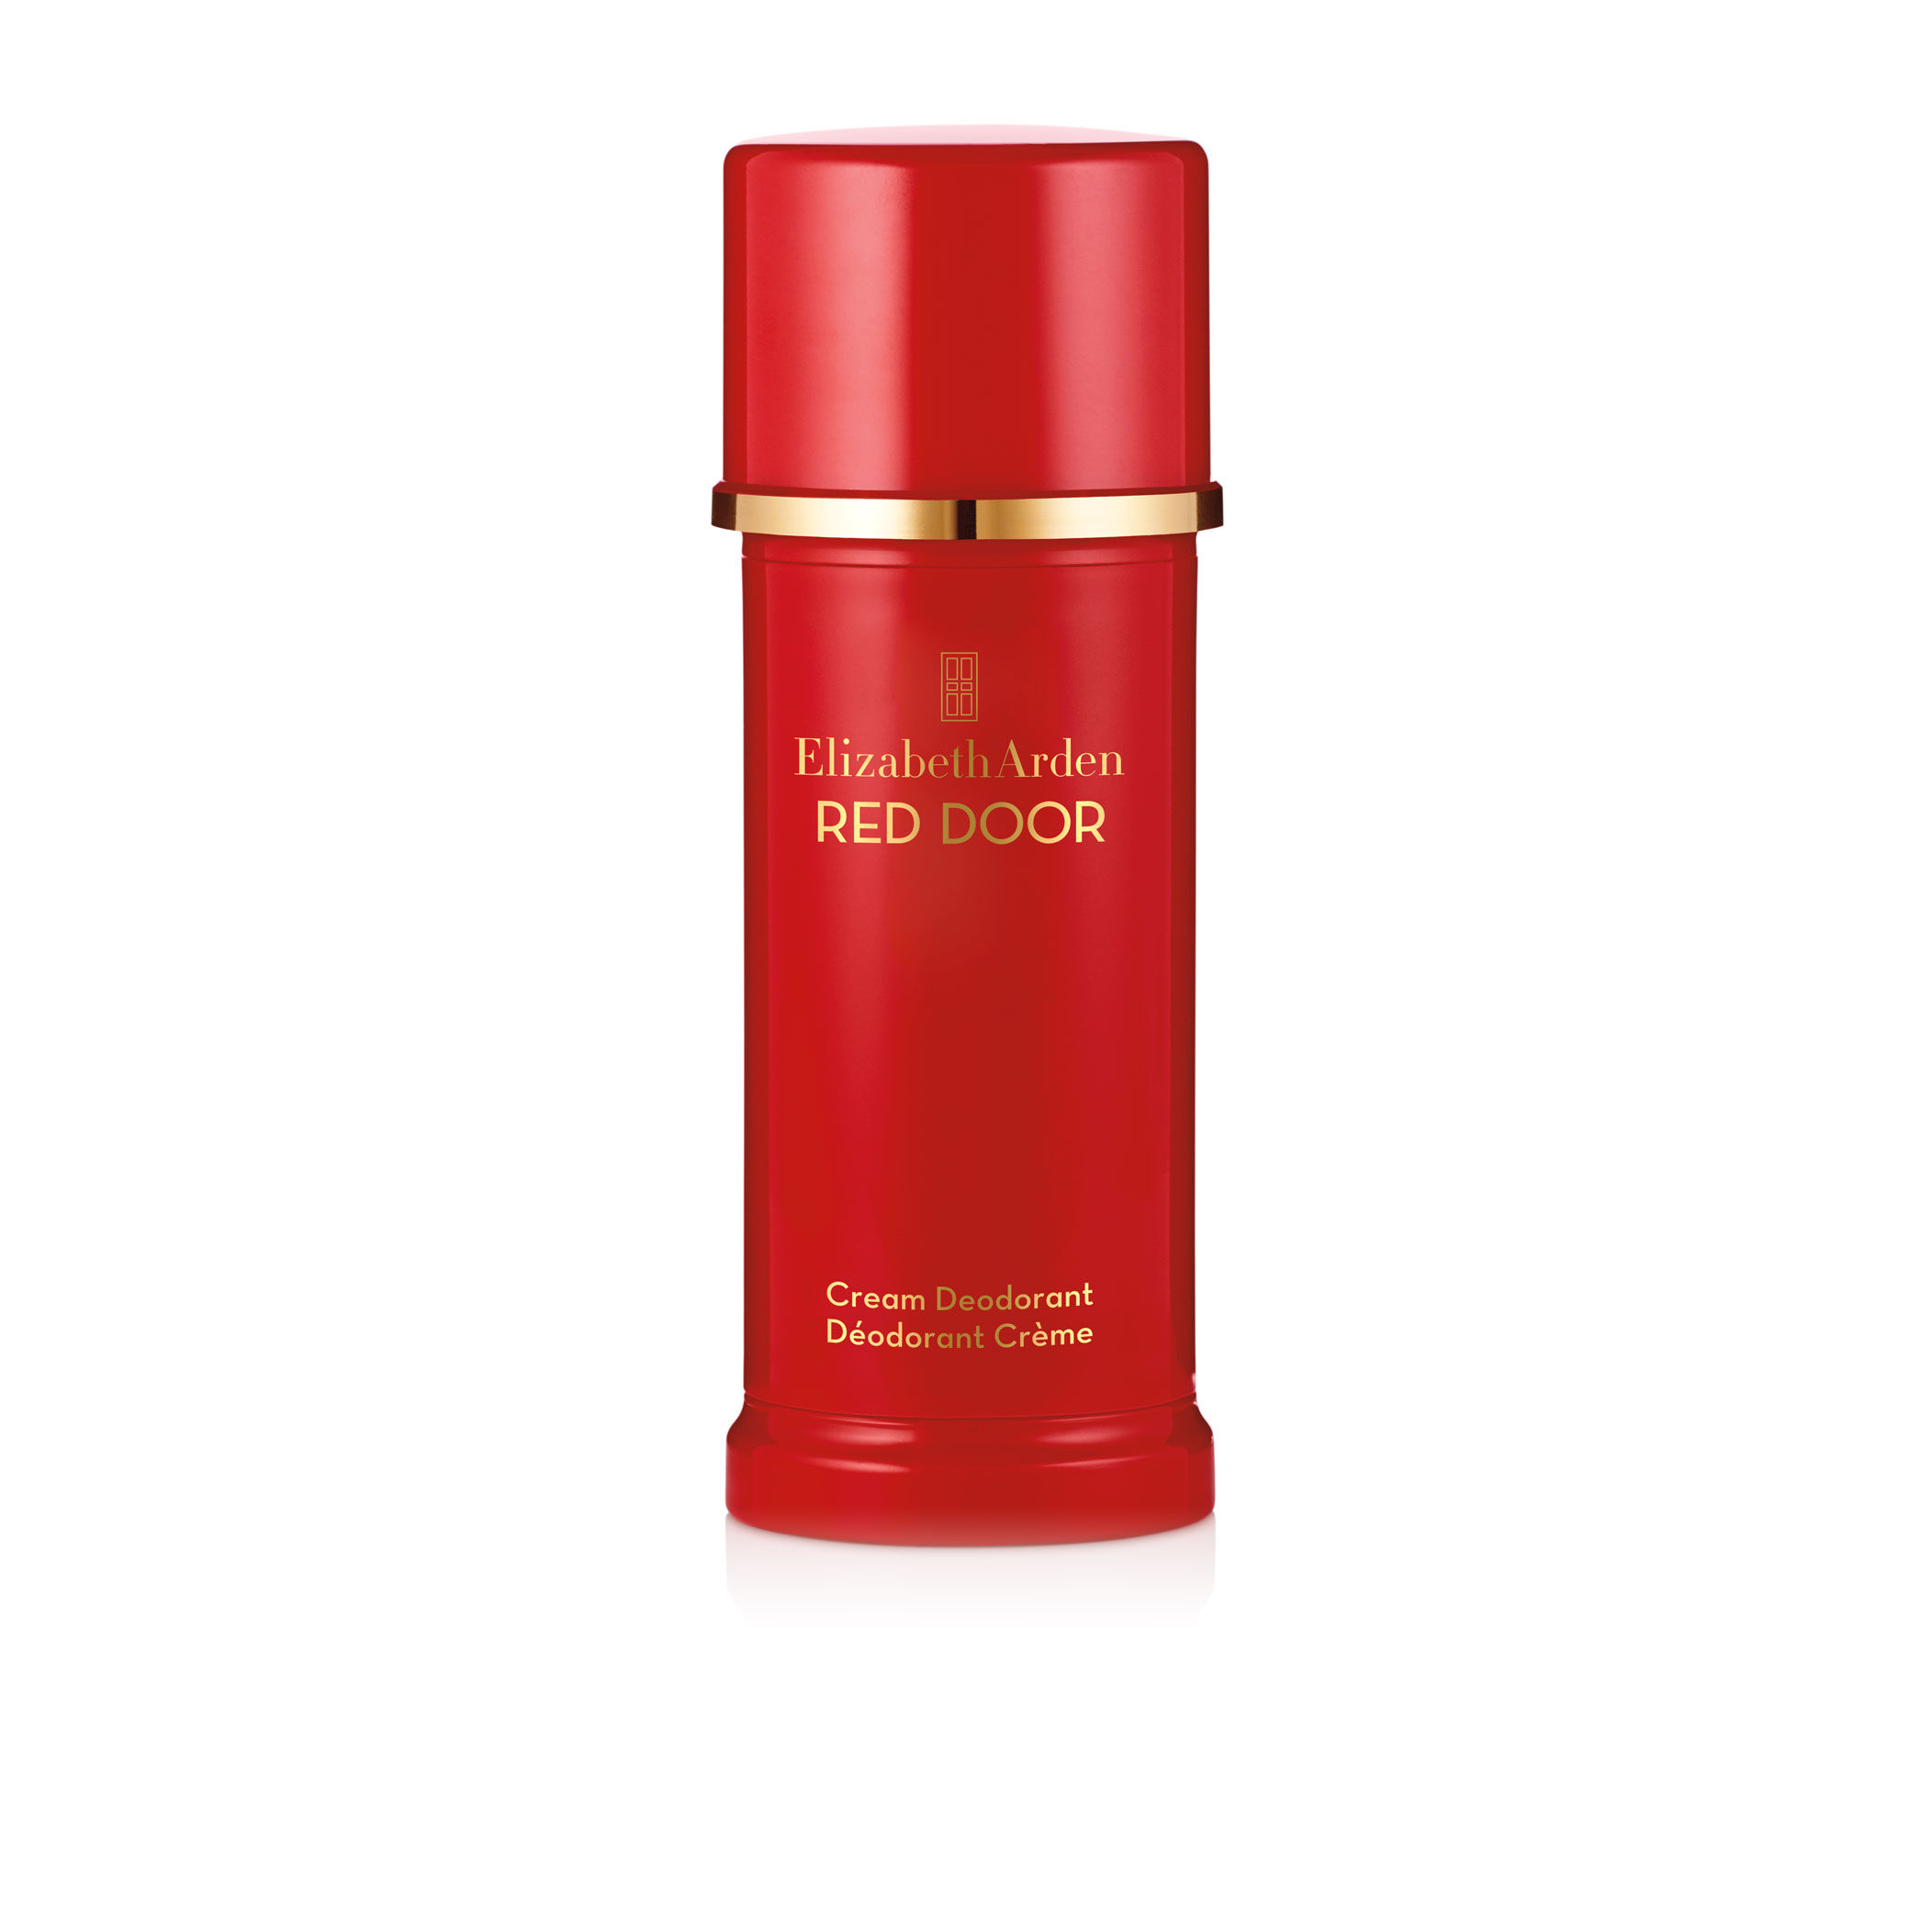 Red Door Cream Deodorant  sc 1 st  Elizabeth Arden & Red Door Perfume a Signature Fragrance | Elizabeth Arden